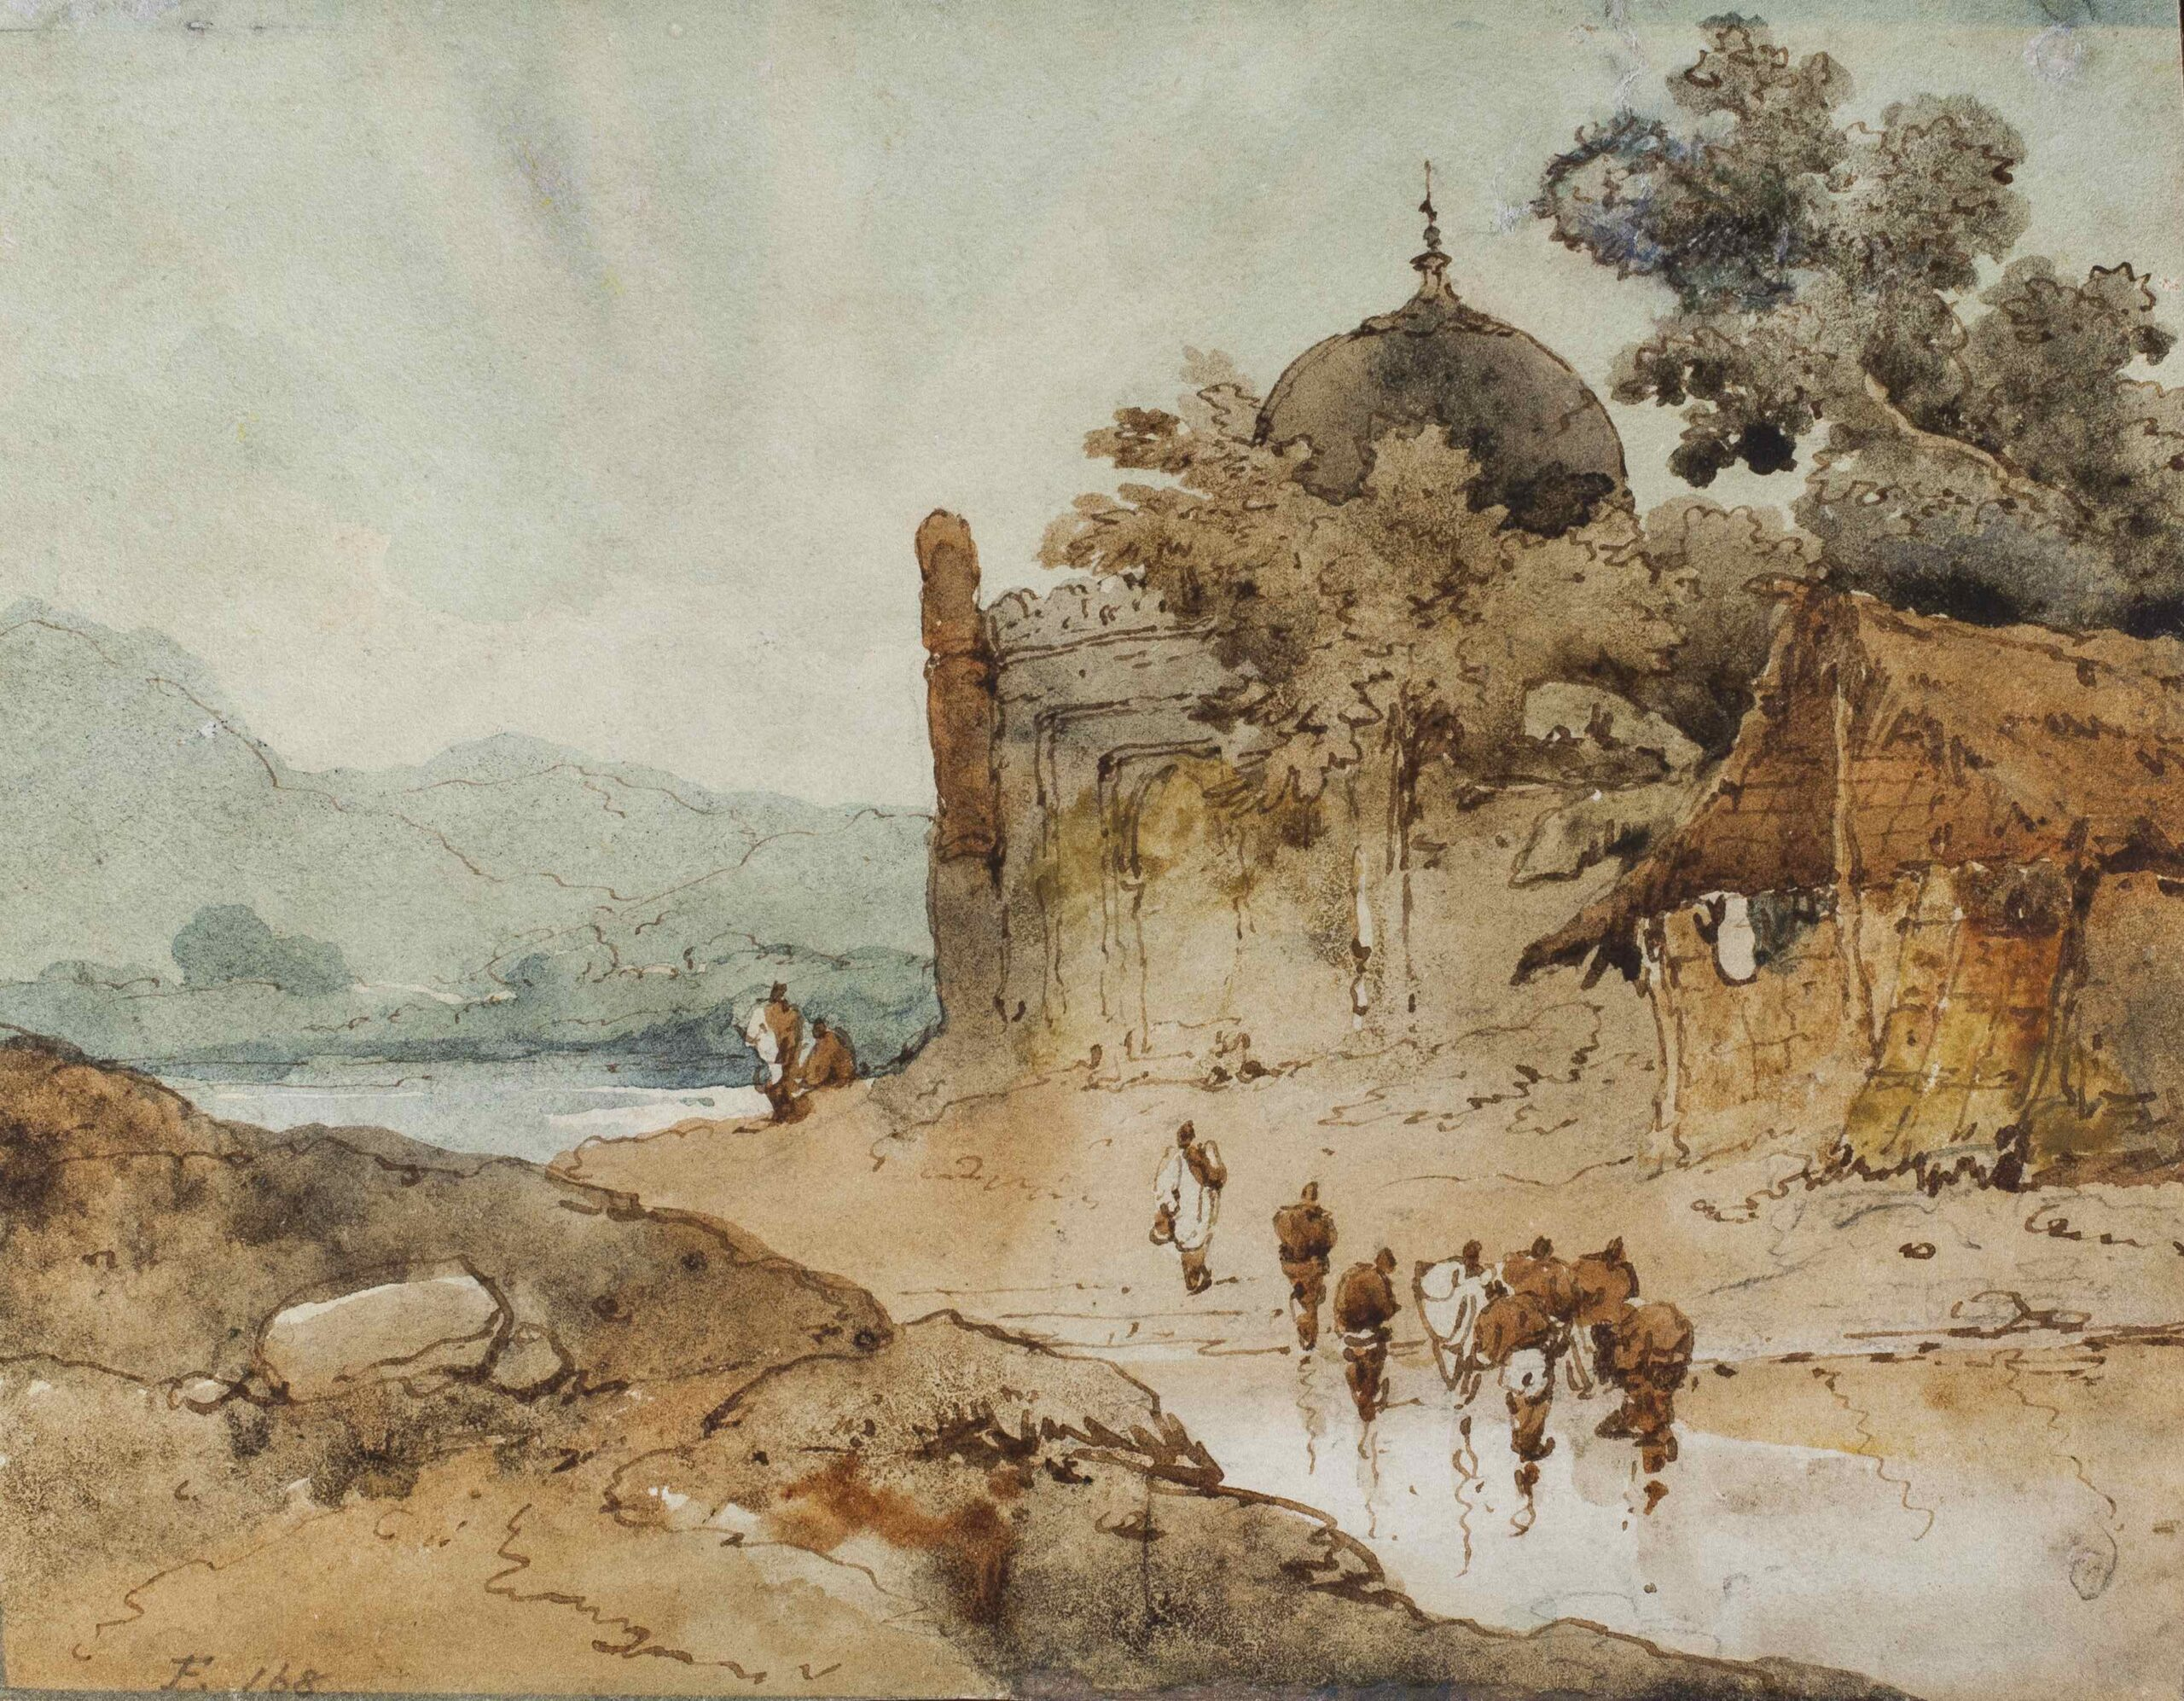 George Chinnery (1772 - 1852) Ruined Temple in a landscape Watercolour, 5 x 8 in (12.7 x 20.3 cm)